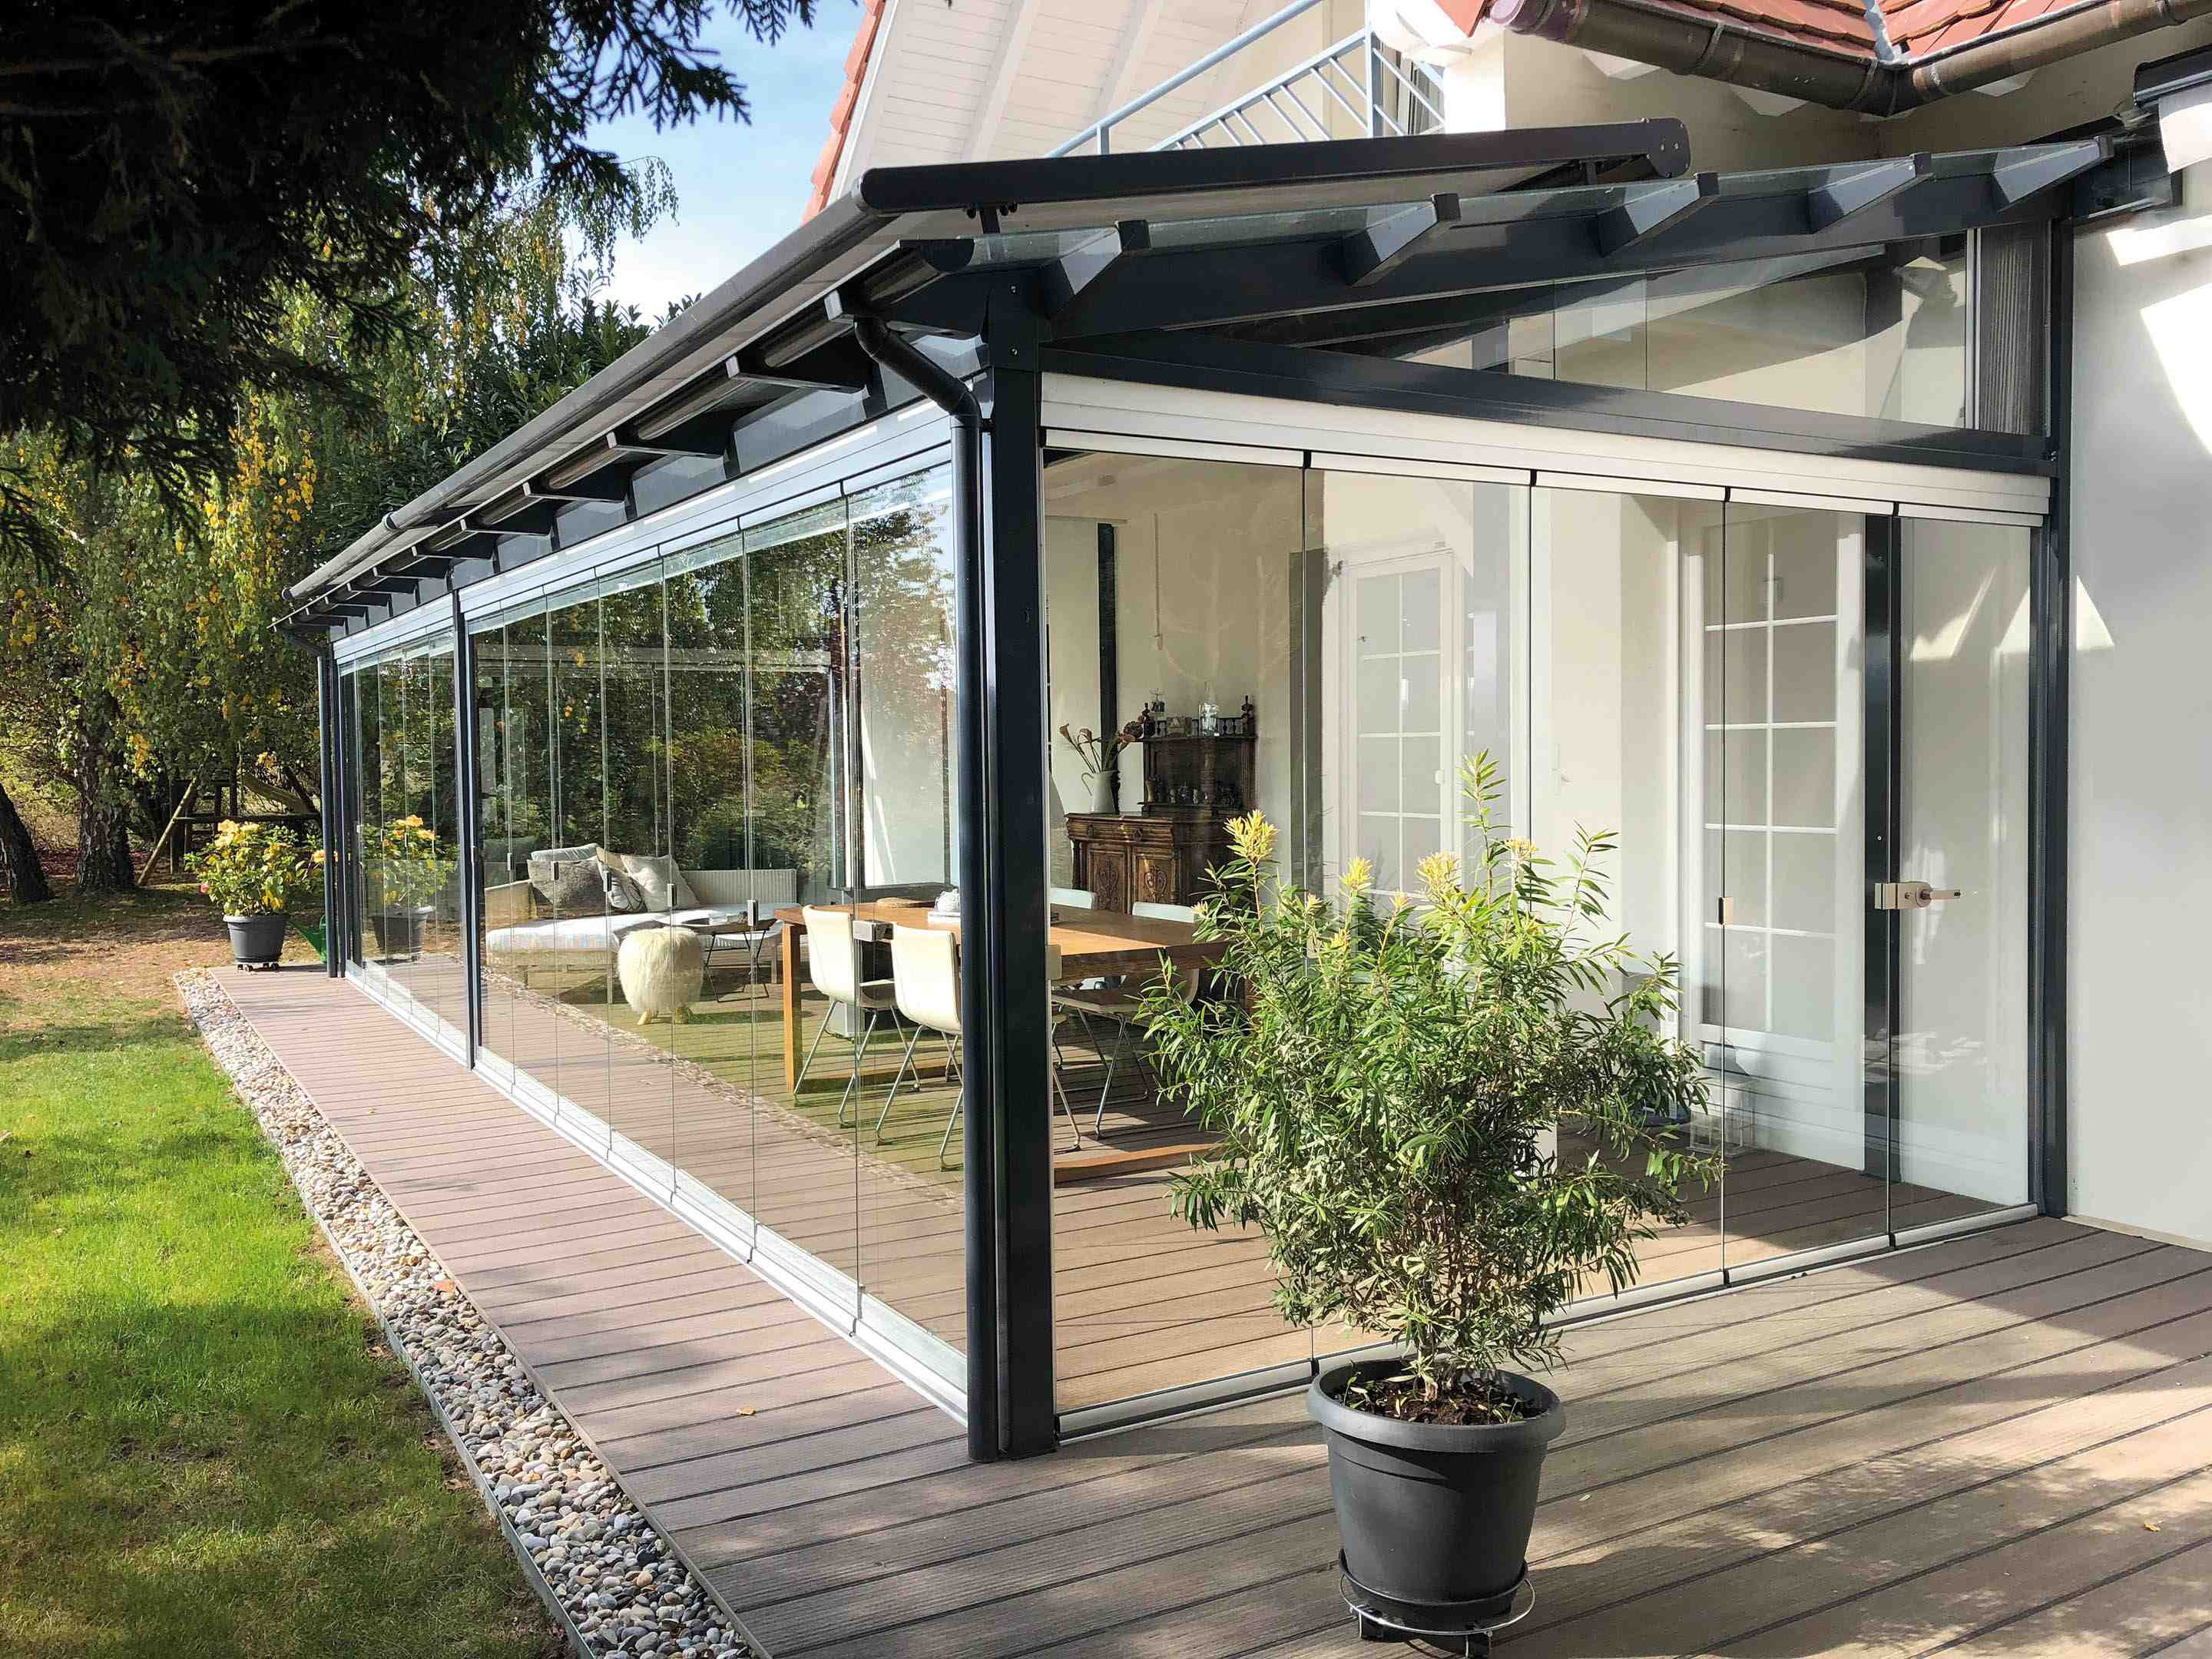 terrace enclosure, sunroom enclosure, sun room ideas, sun room inspiration, sunroom addition, buying a sunroom, sunroom installation process, home design, sunroom renovation